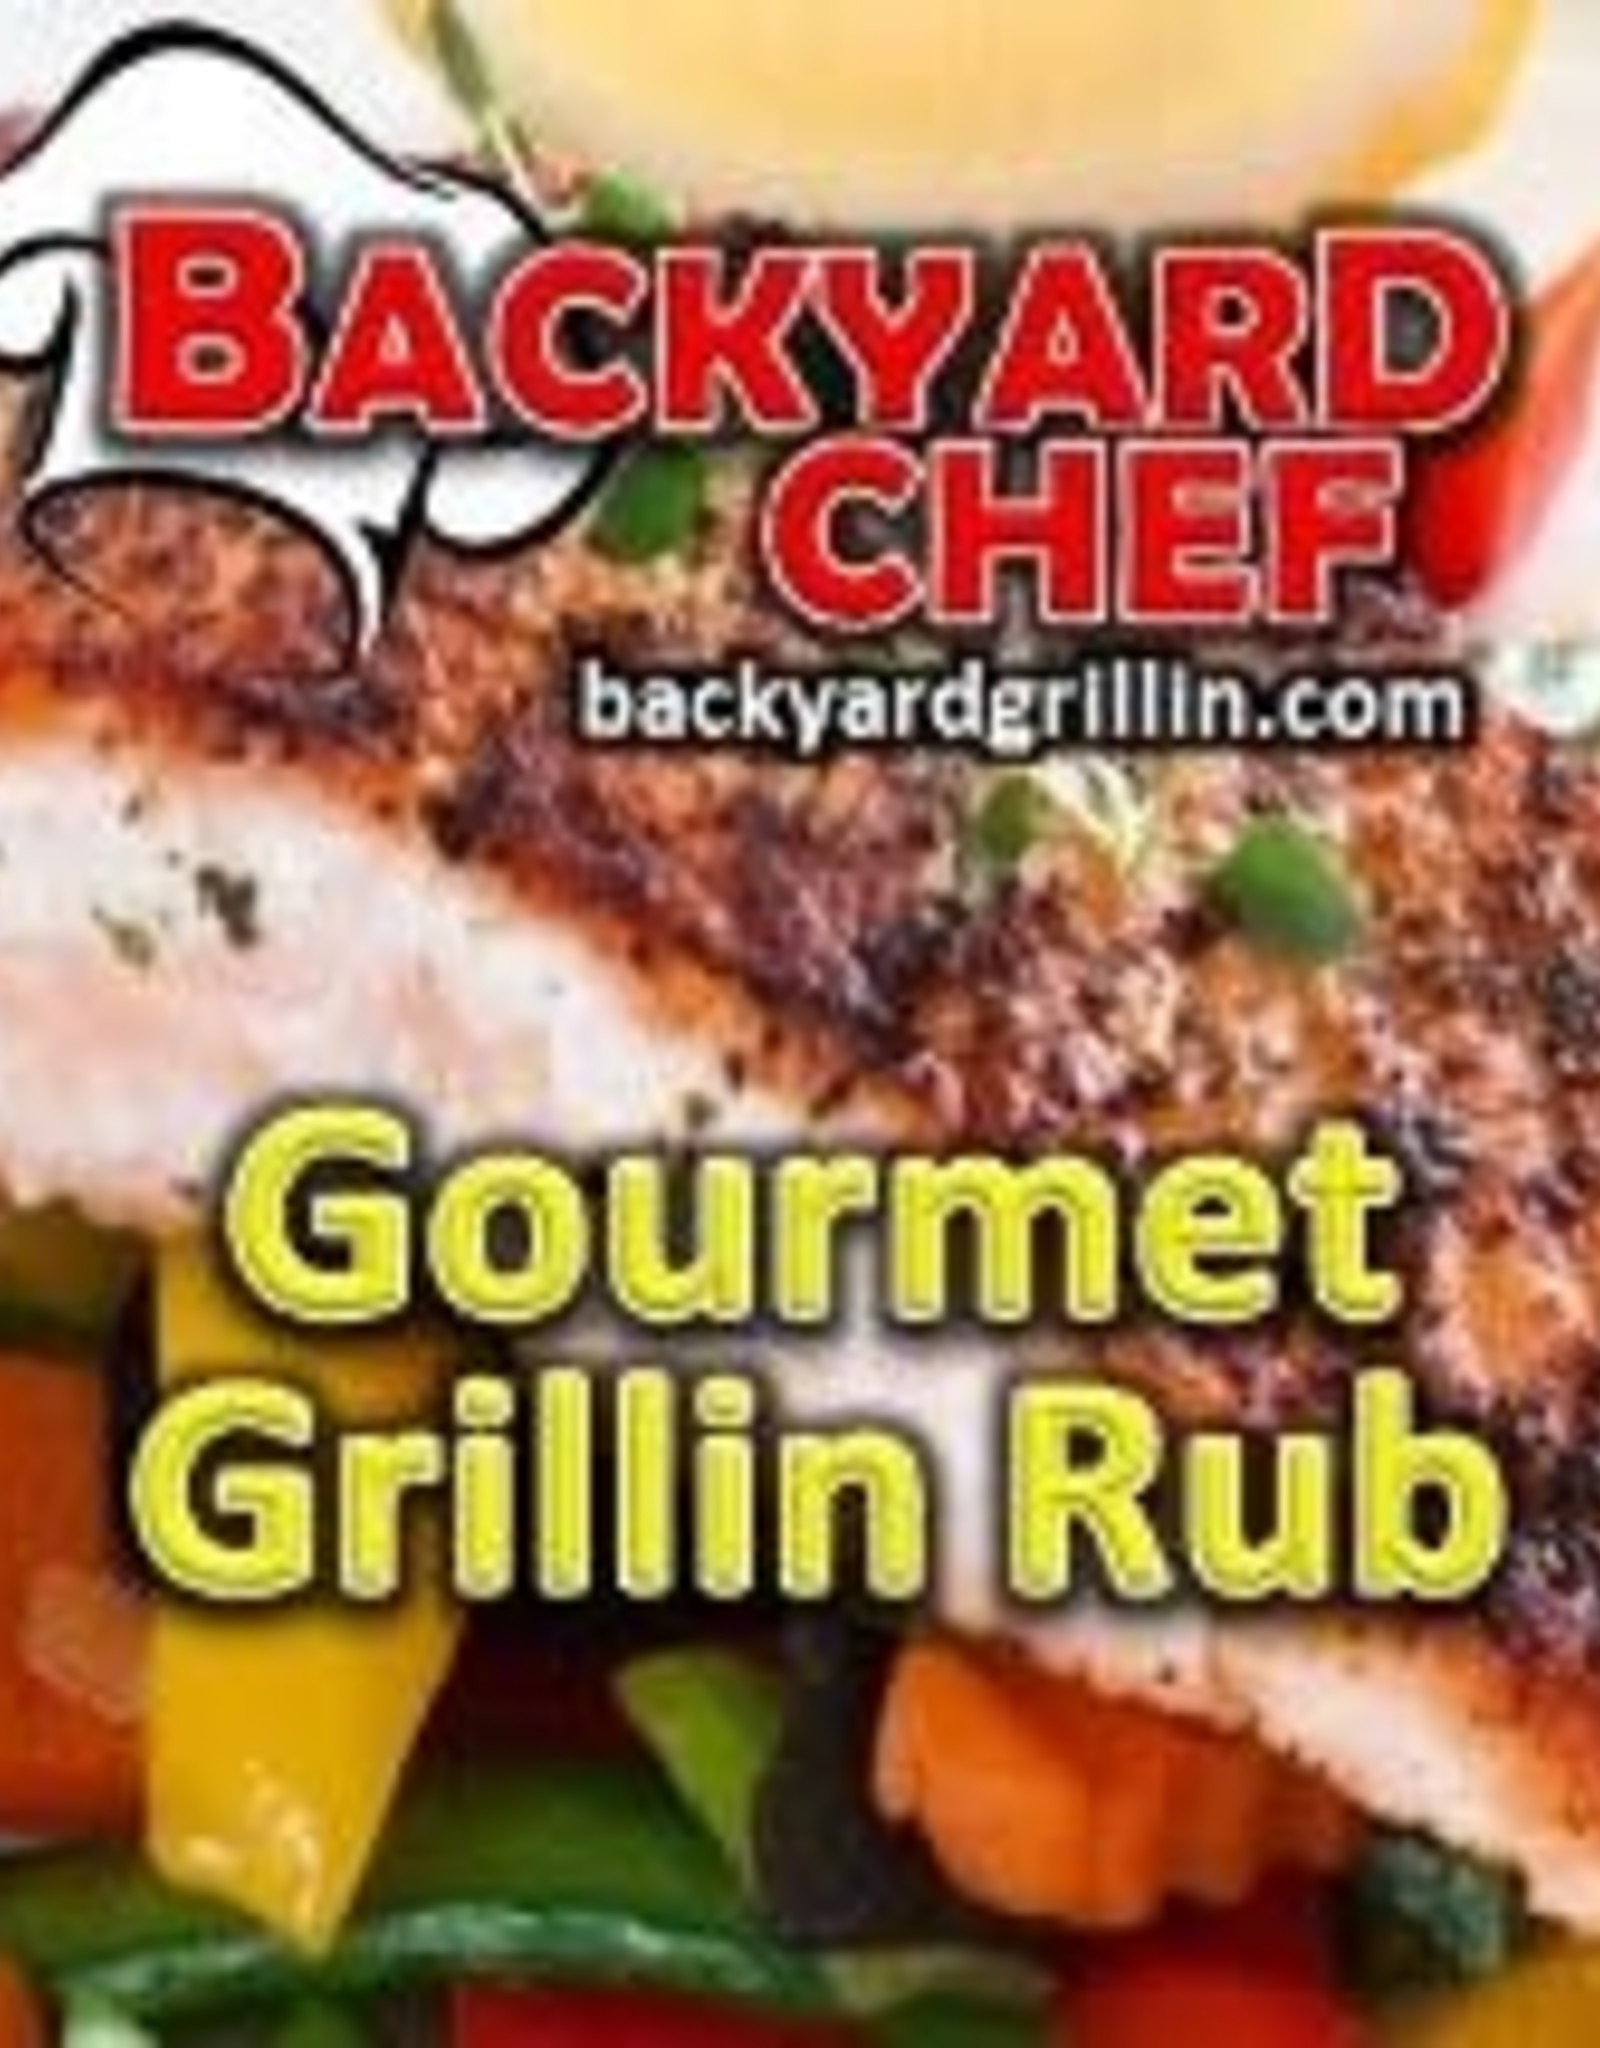 Backyard Chef Gourmet Grillin' Rub - 13 oz.